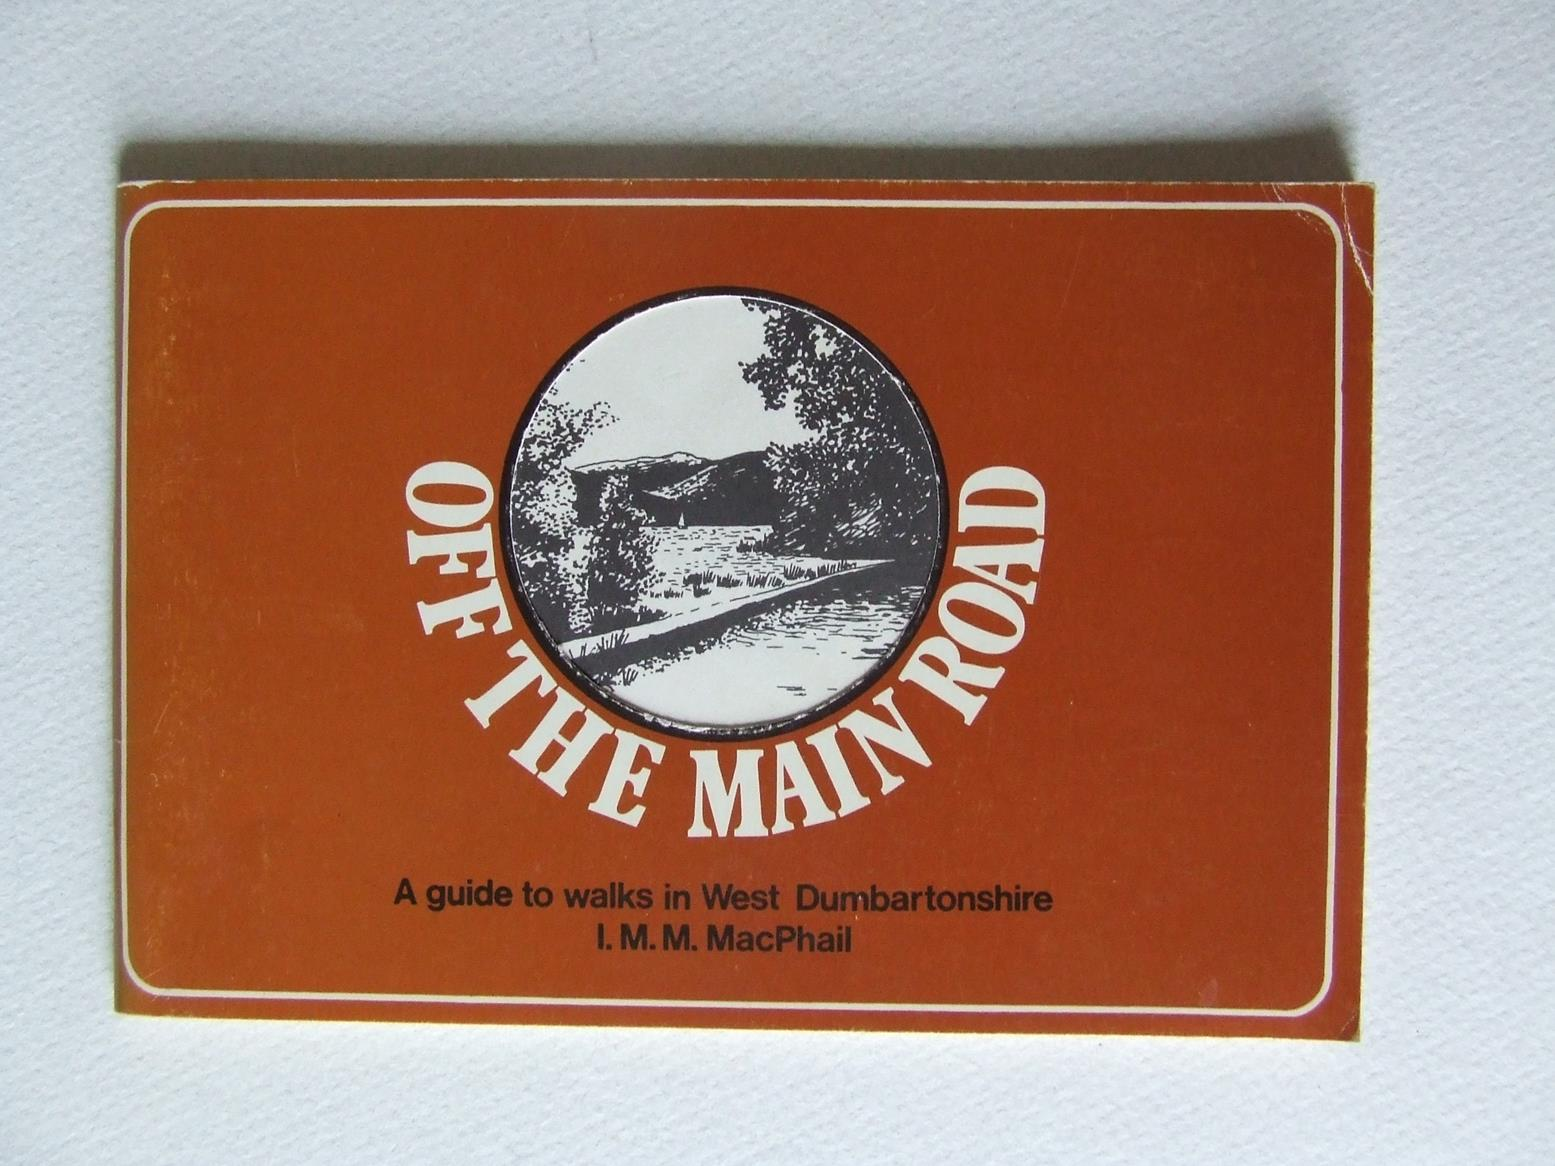 Off the Main Road, a guide to walks in West Dumbartonshire